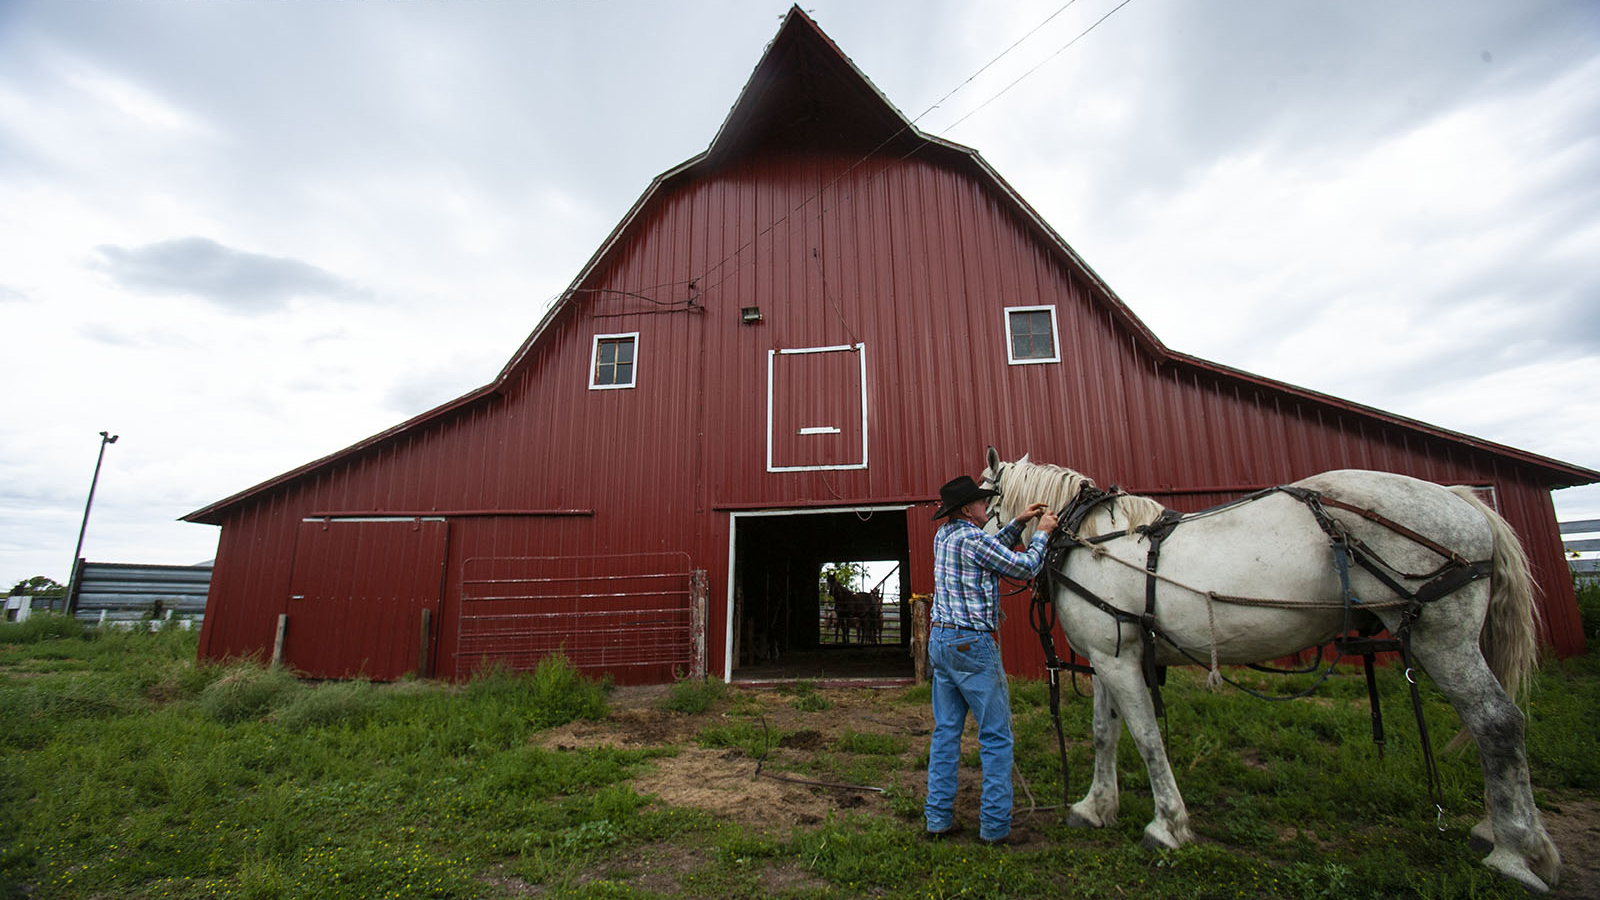 Buck Buckles' ranch features a classic-looking red barn.